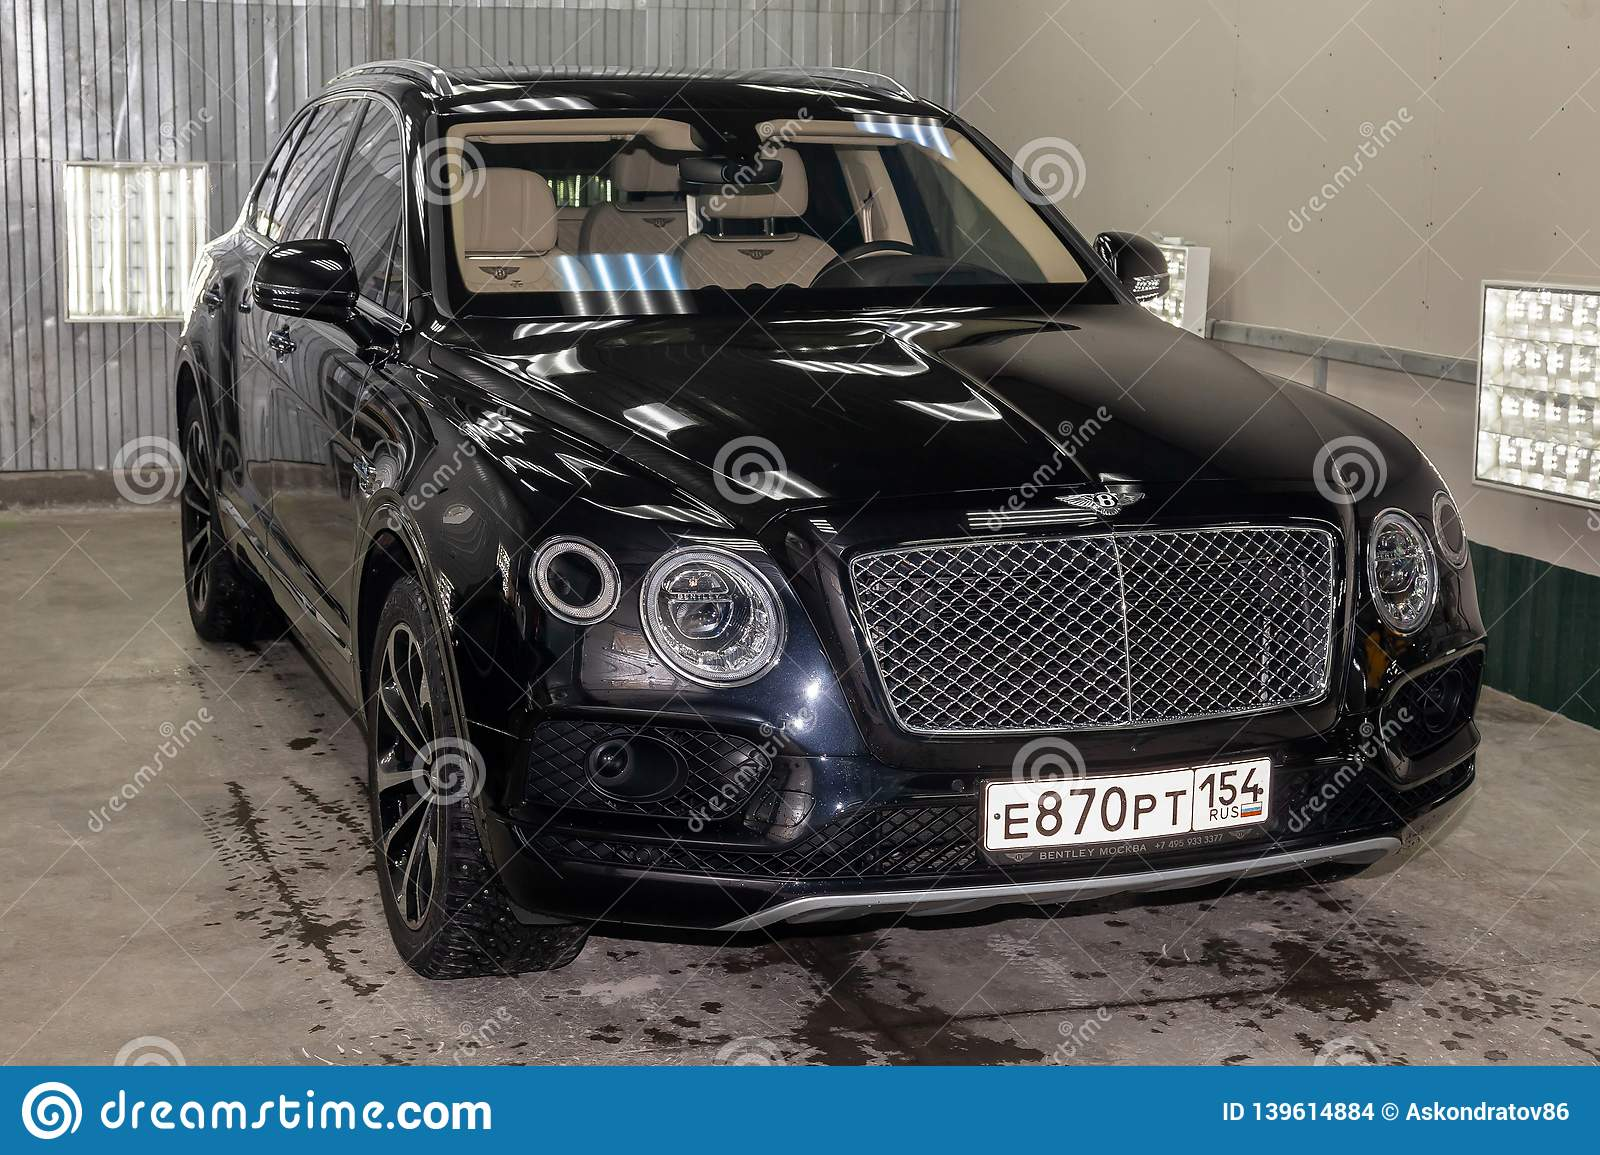 Front View Of Luxury Very Expensive New Black Bentley Bentayga Car Stands In The Washing Box Waiting For Repair In Auto Service Editorial Stock Image Image Of British Elegant 139614884